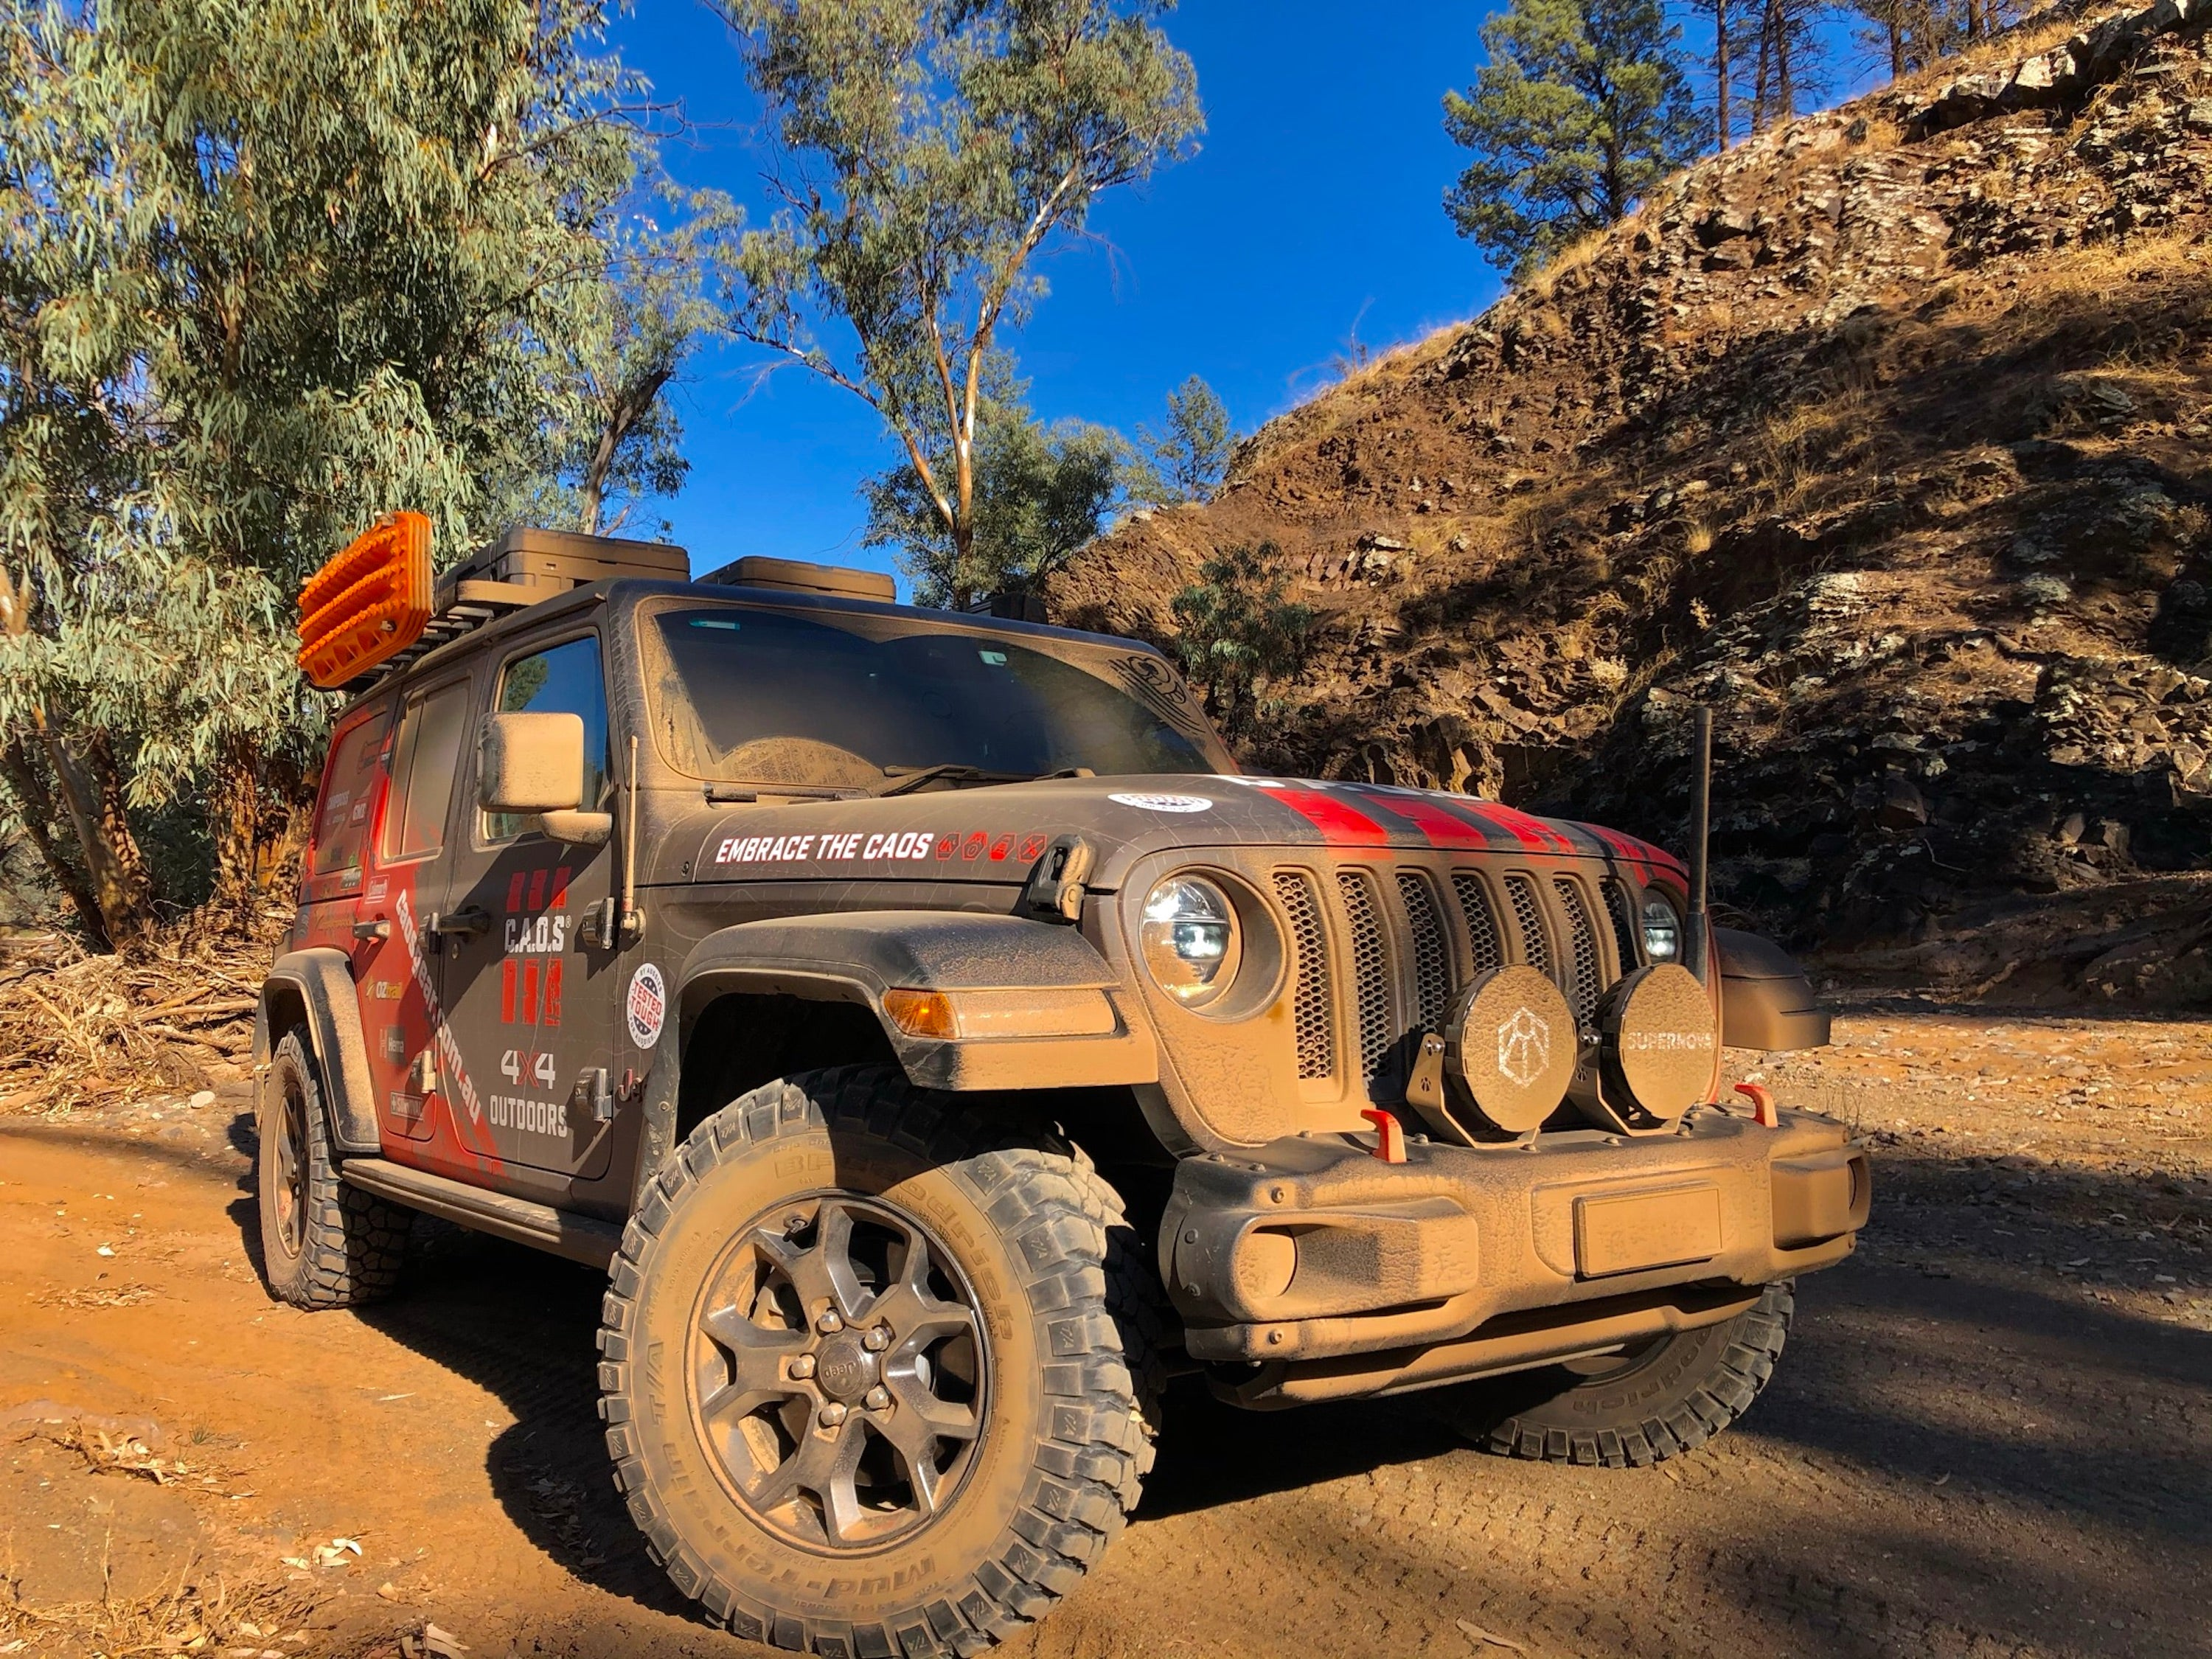 Dusty CAOS Jeep In Brachnia Gorge River Bed